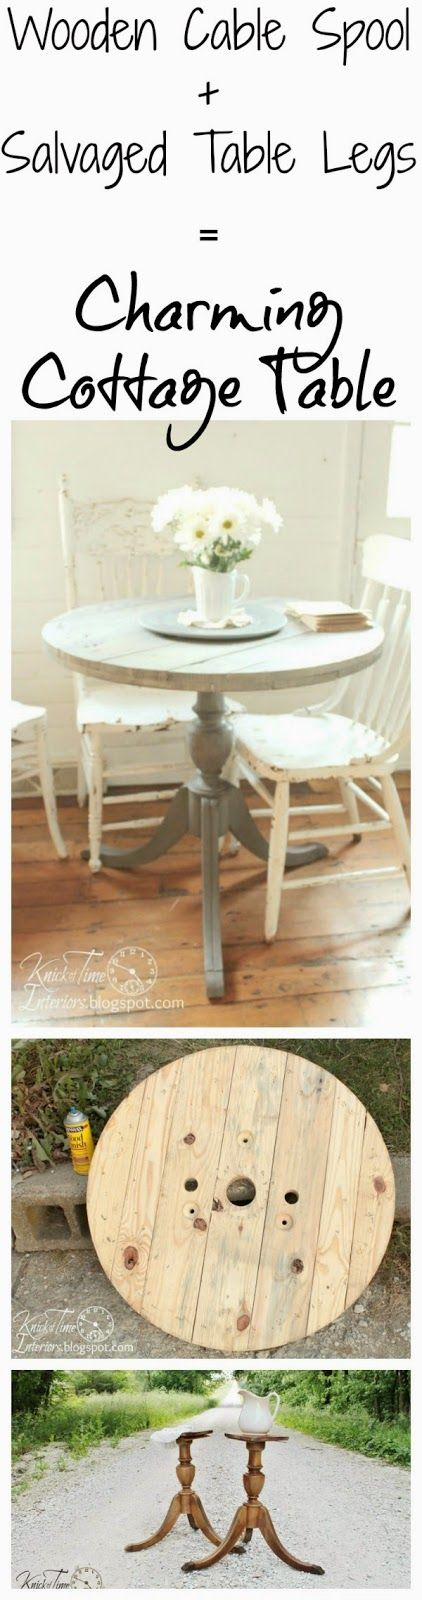 DIY Cottage Table from Wooden Cable Spool  Repurposed Legs via Knick of Time @ knickoftimeinteriors.blogspot.com